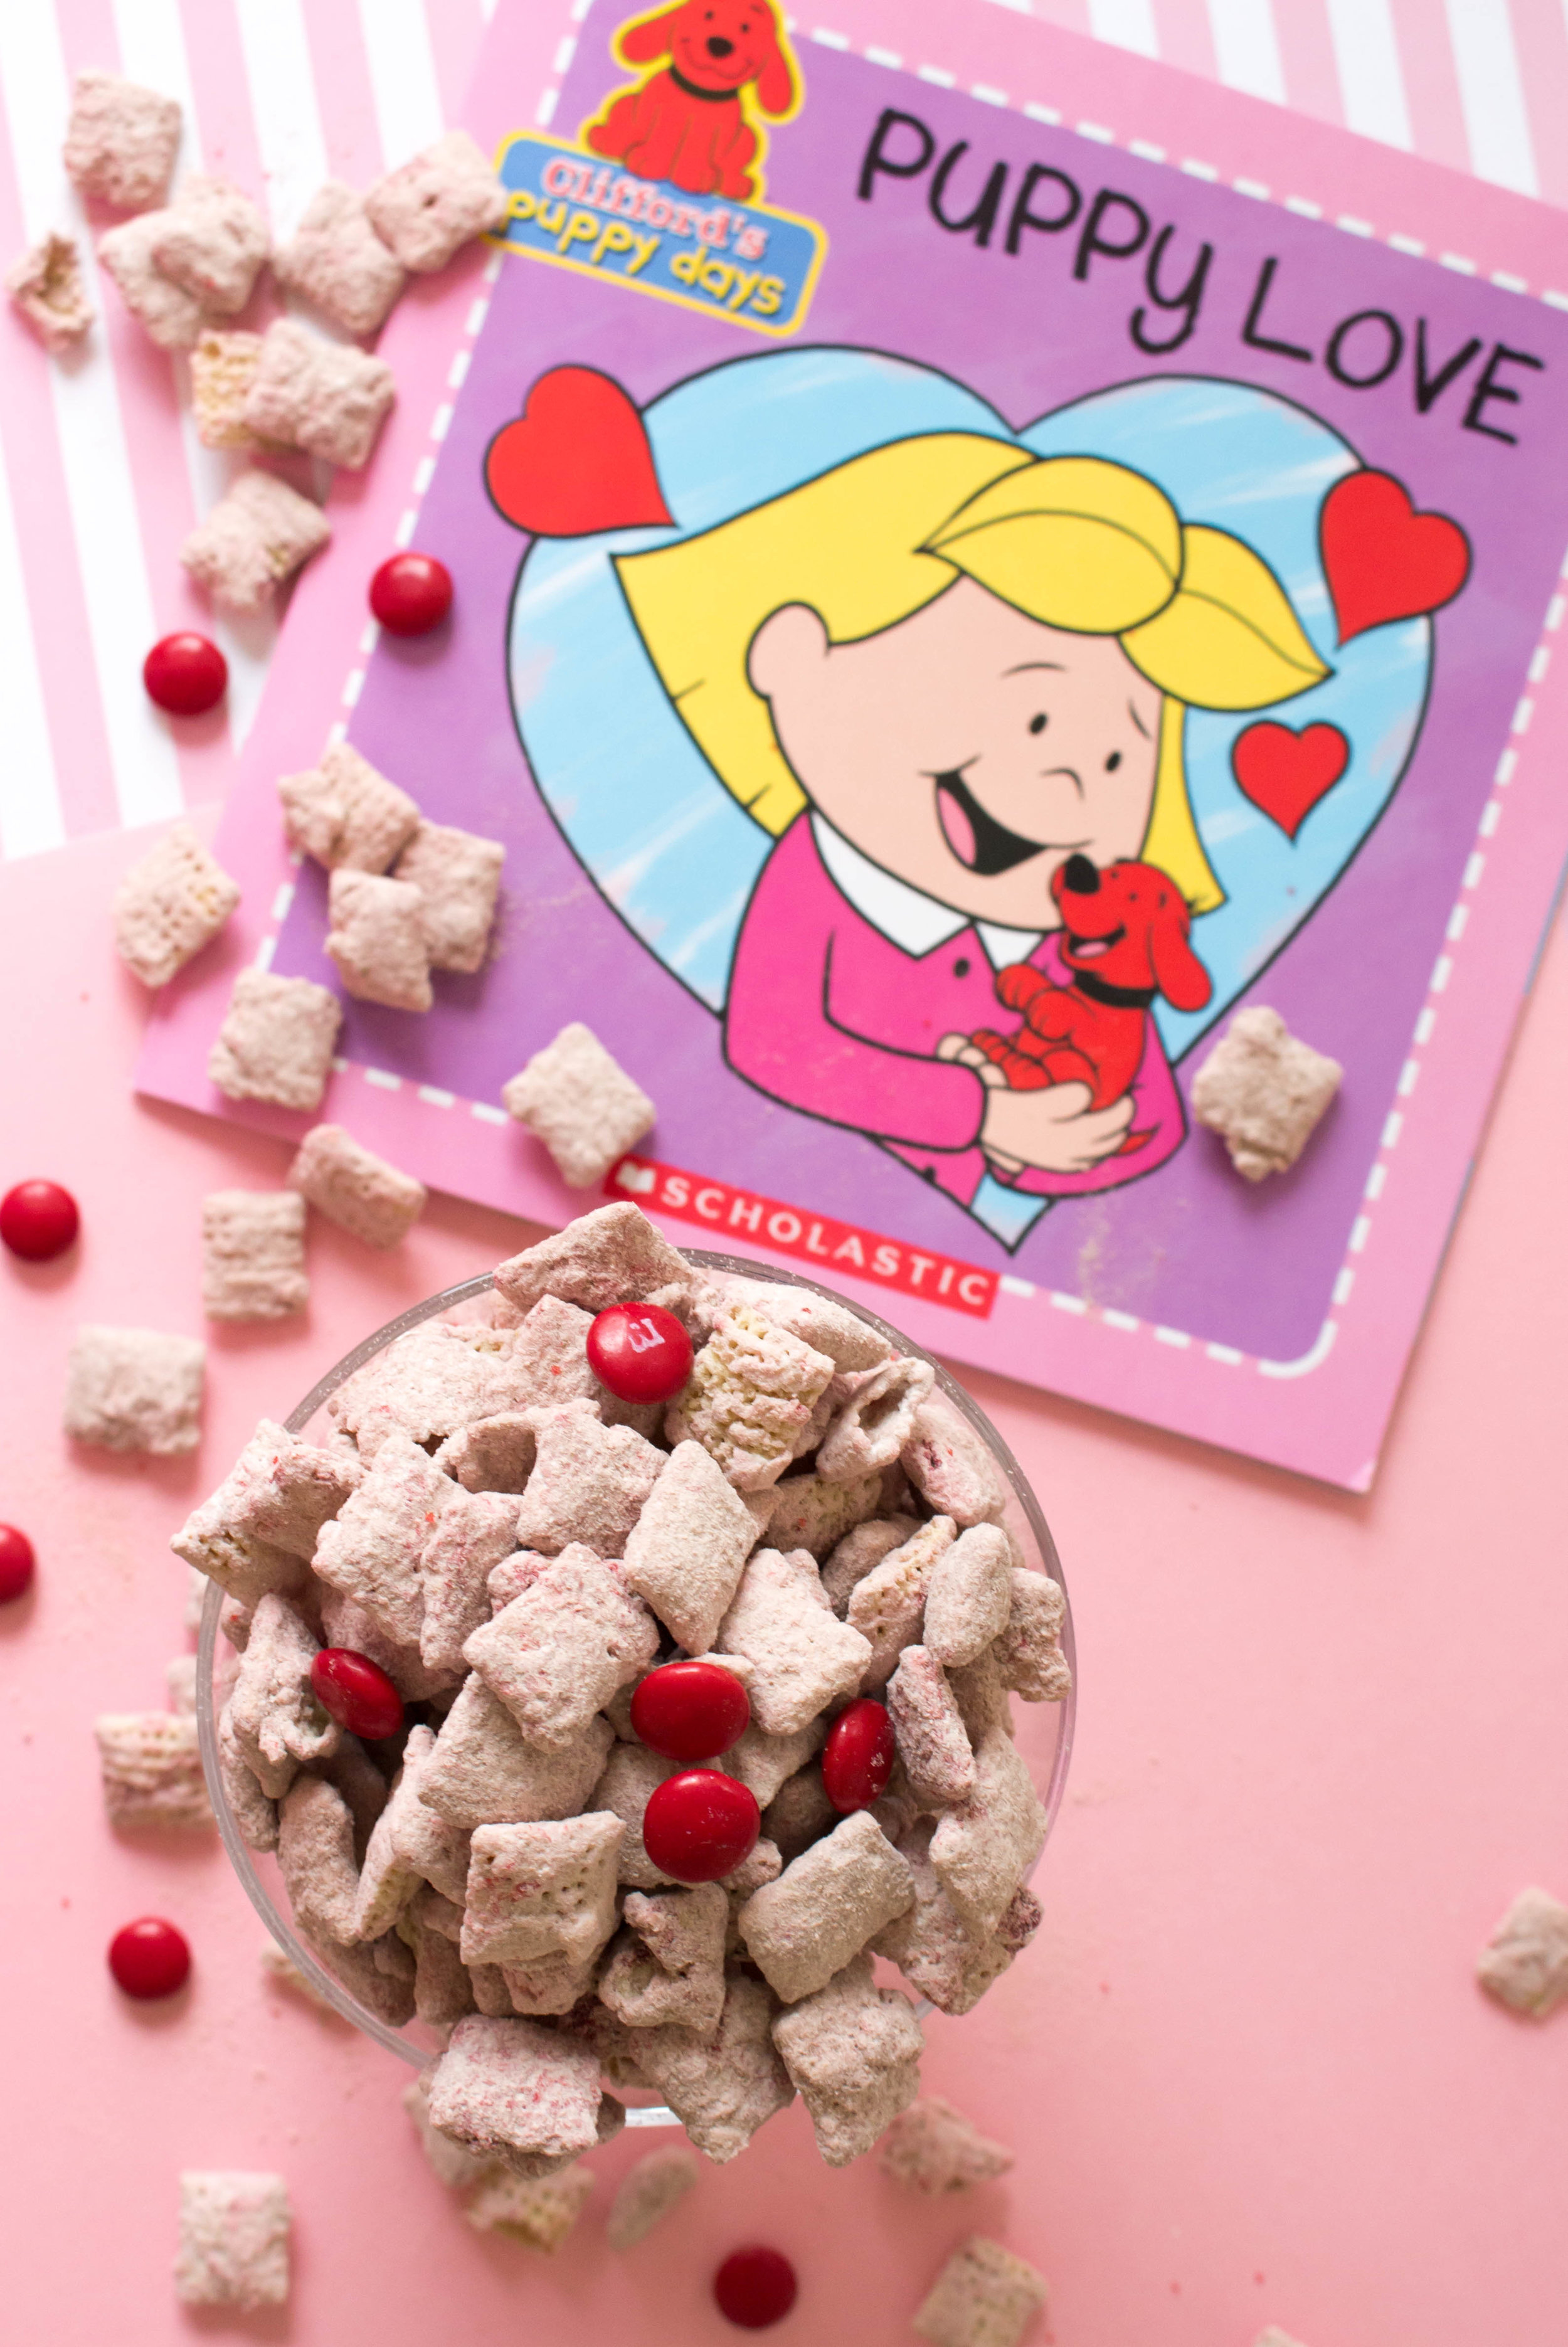 Clifford's Red Velvet Puppy Chow